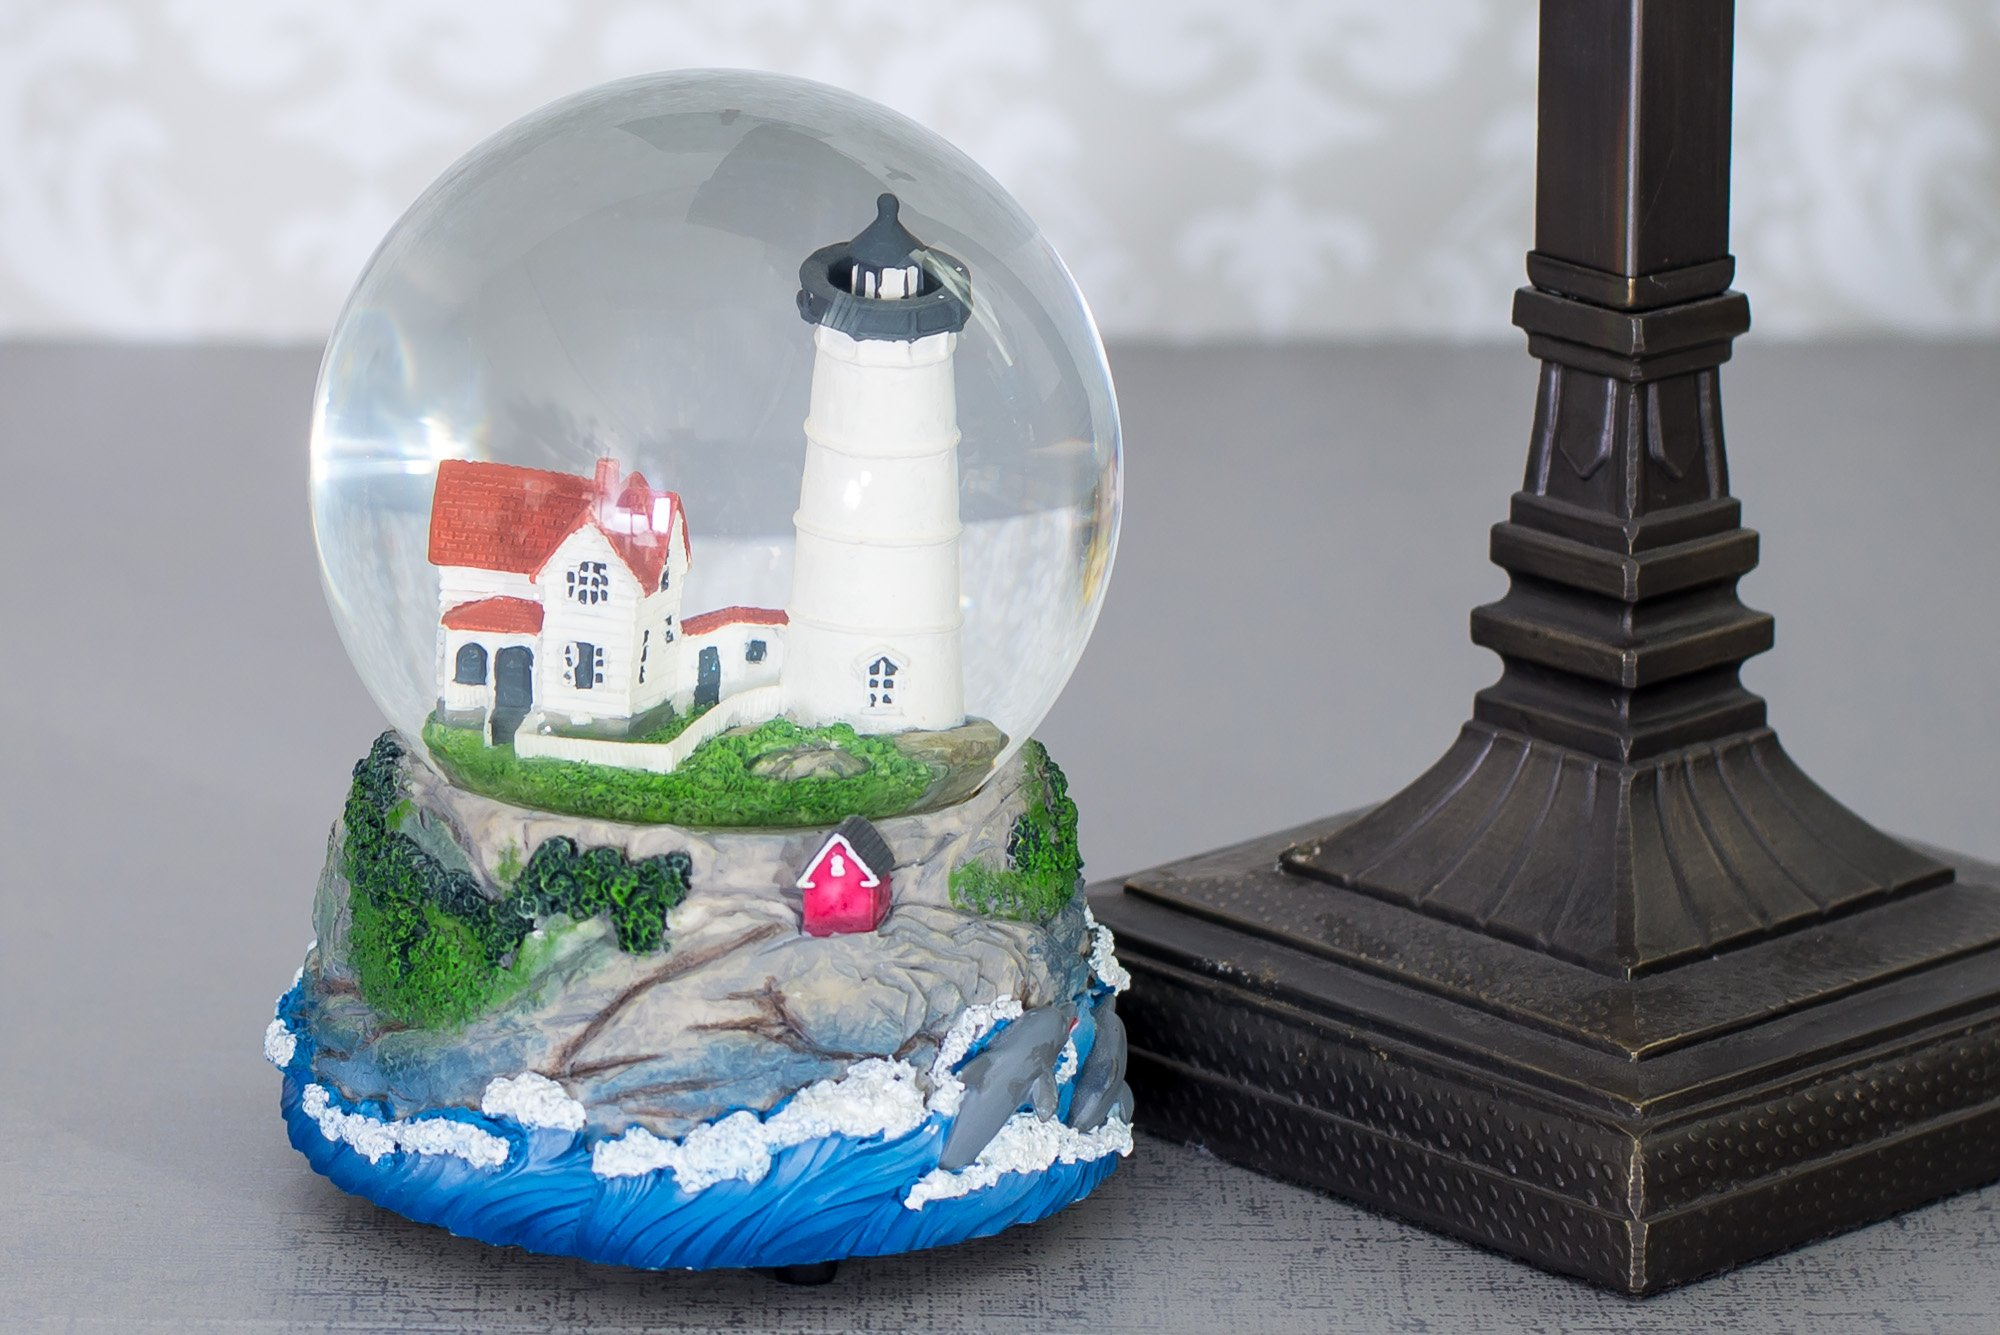 Cape Cod Lighthouse Cottage 100MM Music Water Globe Plays Tune Dock of the Bay by Cadona International, Inc (Image #2)